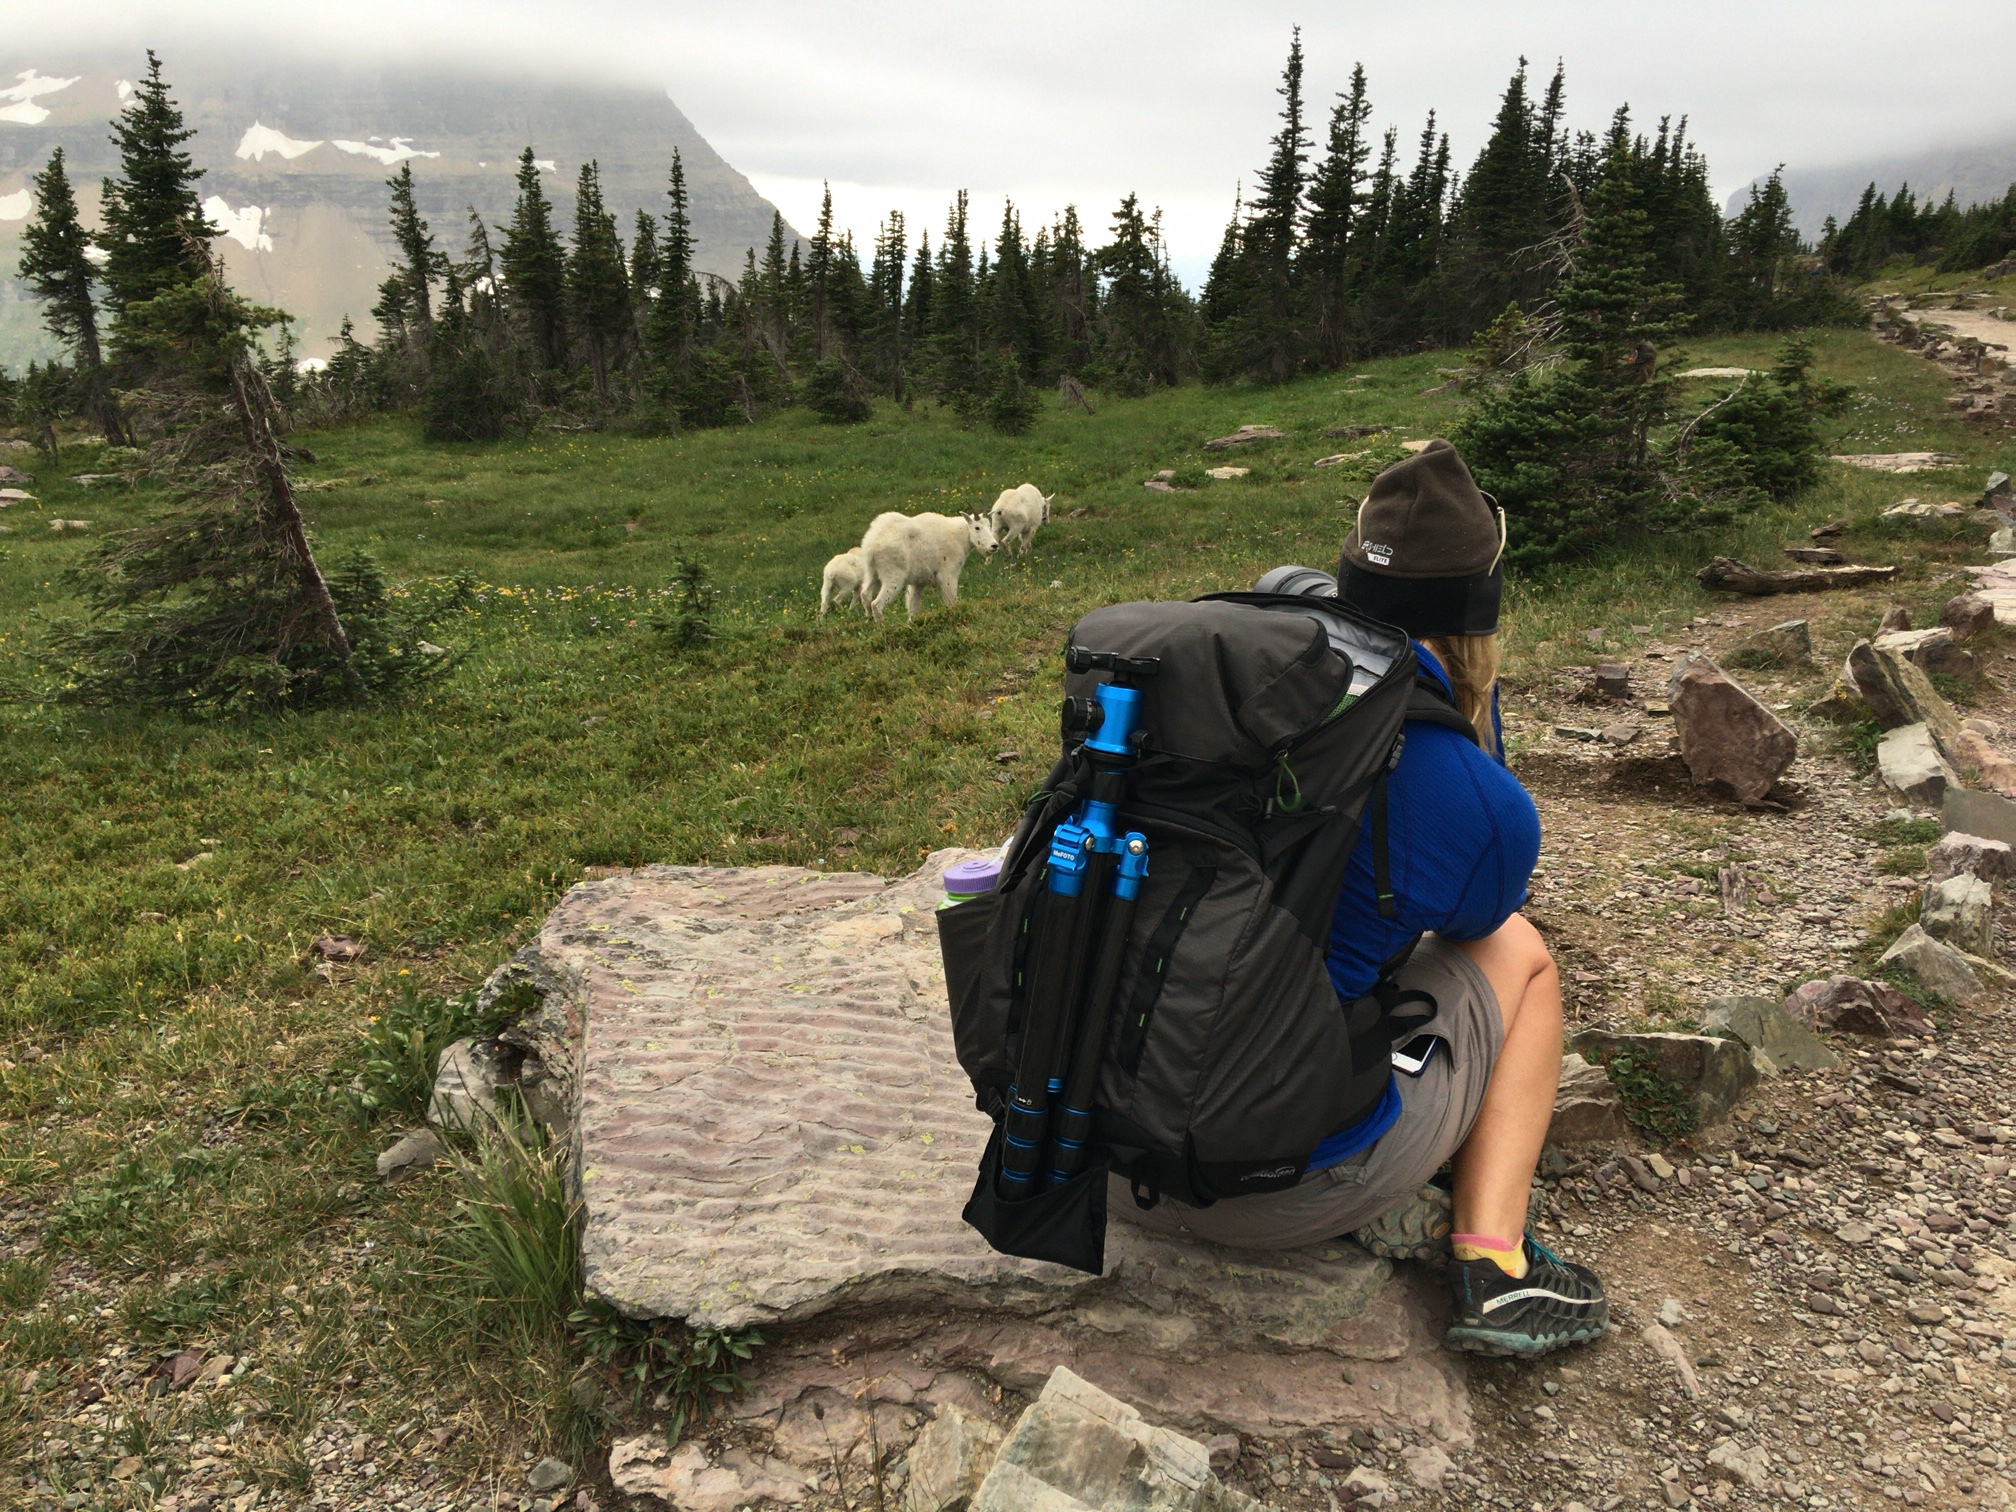 Photographing the mountain goats (my favorite thing to do!) near Logan Pass